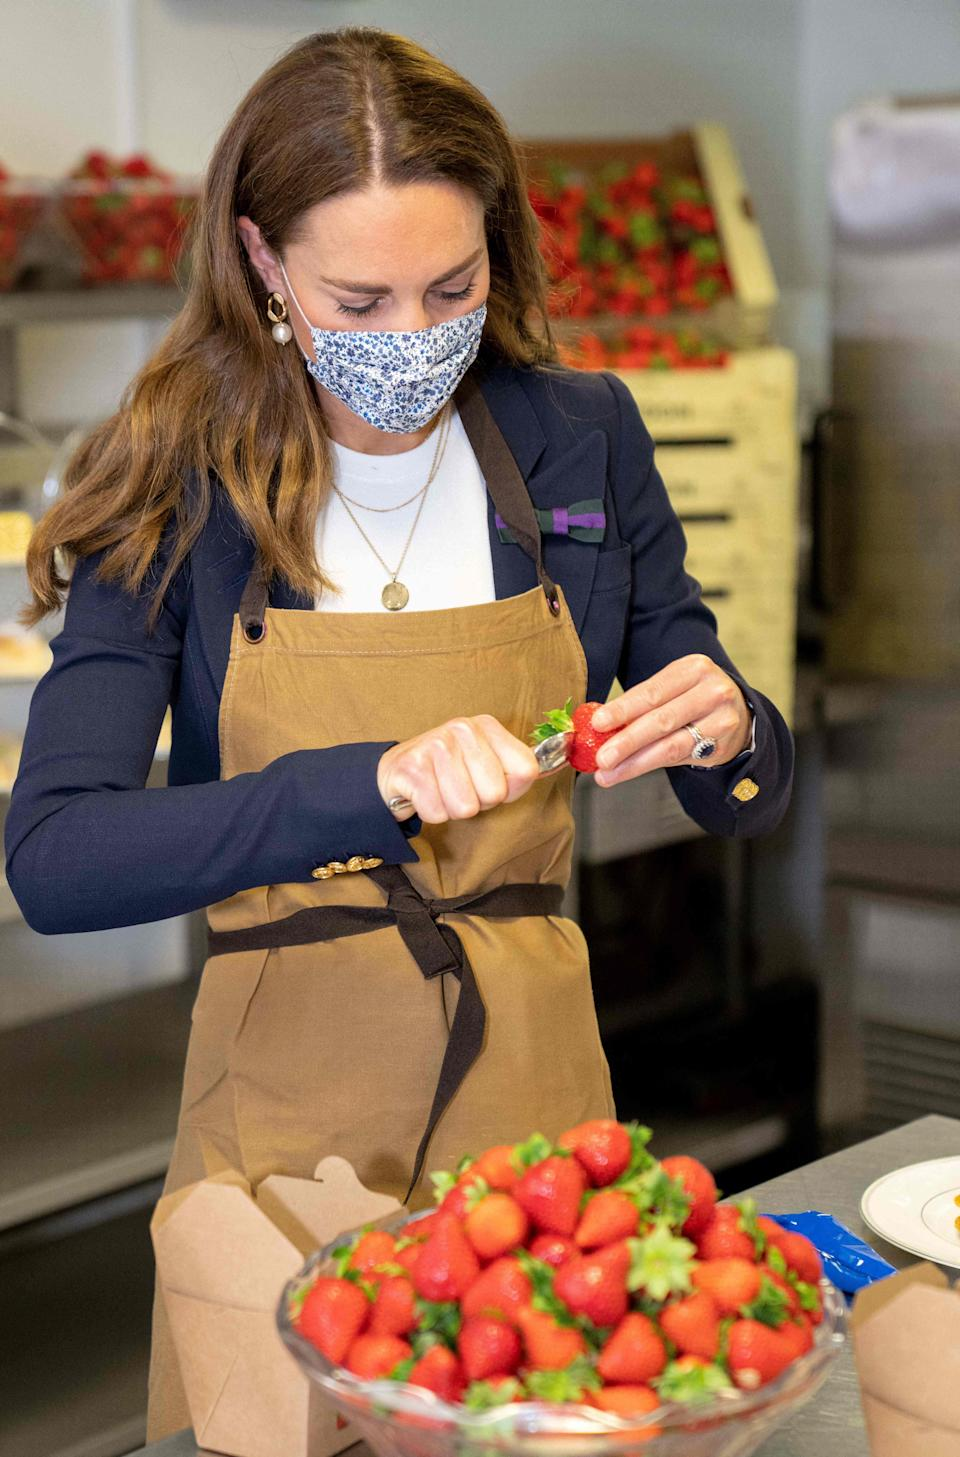 Britain's Catherine, Duchess of Cambridge, Patron of the All England Lawn Tennis Club, preparies strawberries in the Wingfield kitchen during her visit on the fifth day of the 2021 Wimbledon Championships at The All England Tennis Club in Wimbledon, southwest London, on July 2, 2021. - RESTRICTED TO EDITORIAL USE (Photo by AELTC/Thomas Lovelock / POOL / AFP) / RESTRICTED TO EDITORIAL USE (Photo by AELTC/THOMAS LOVELOCK/POOL/AFP via Getty Images)